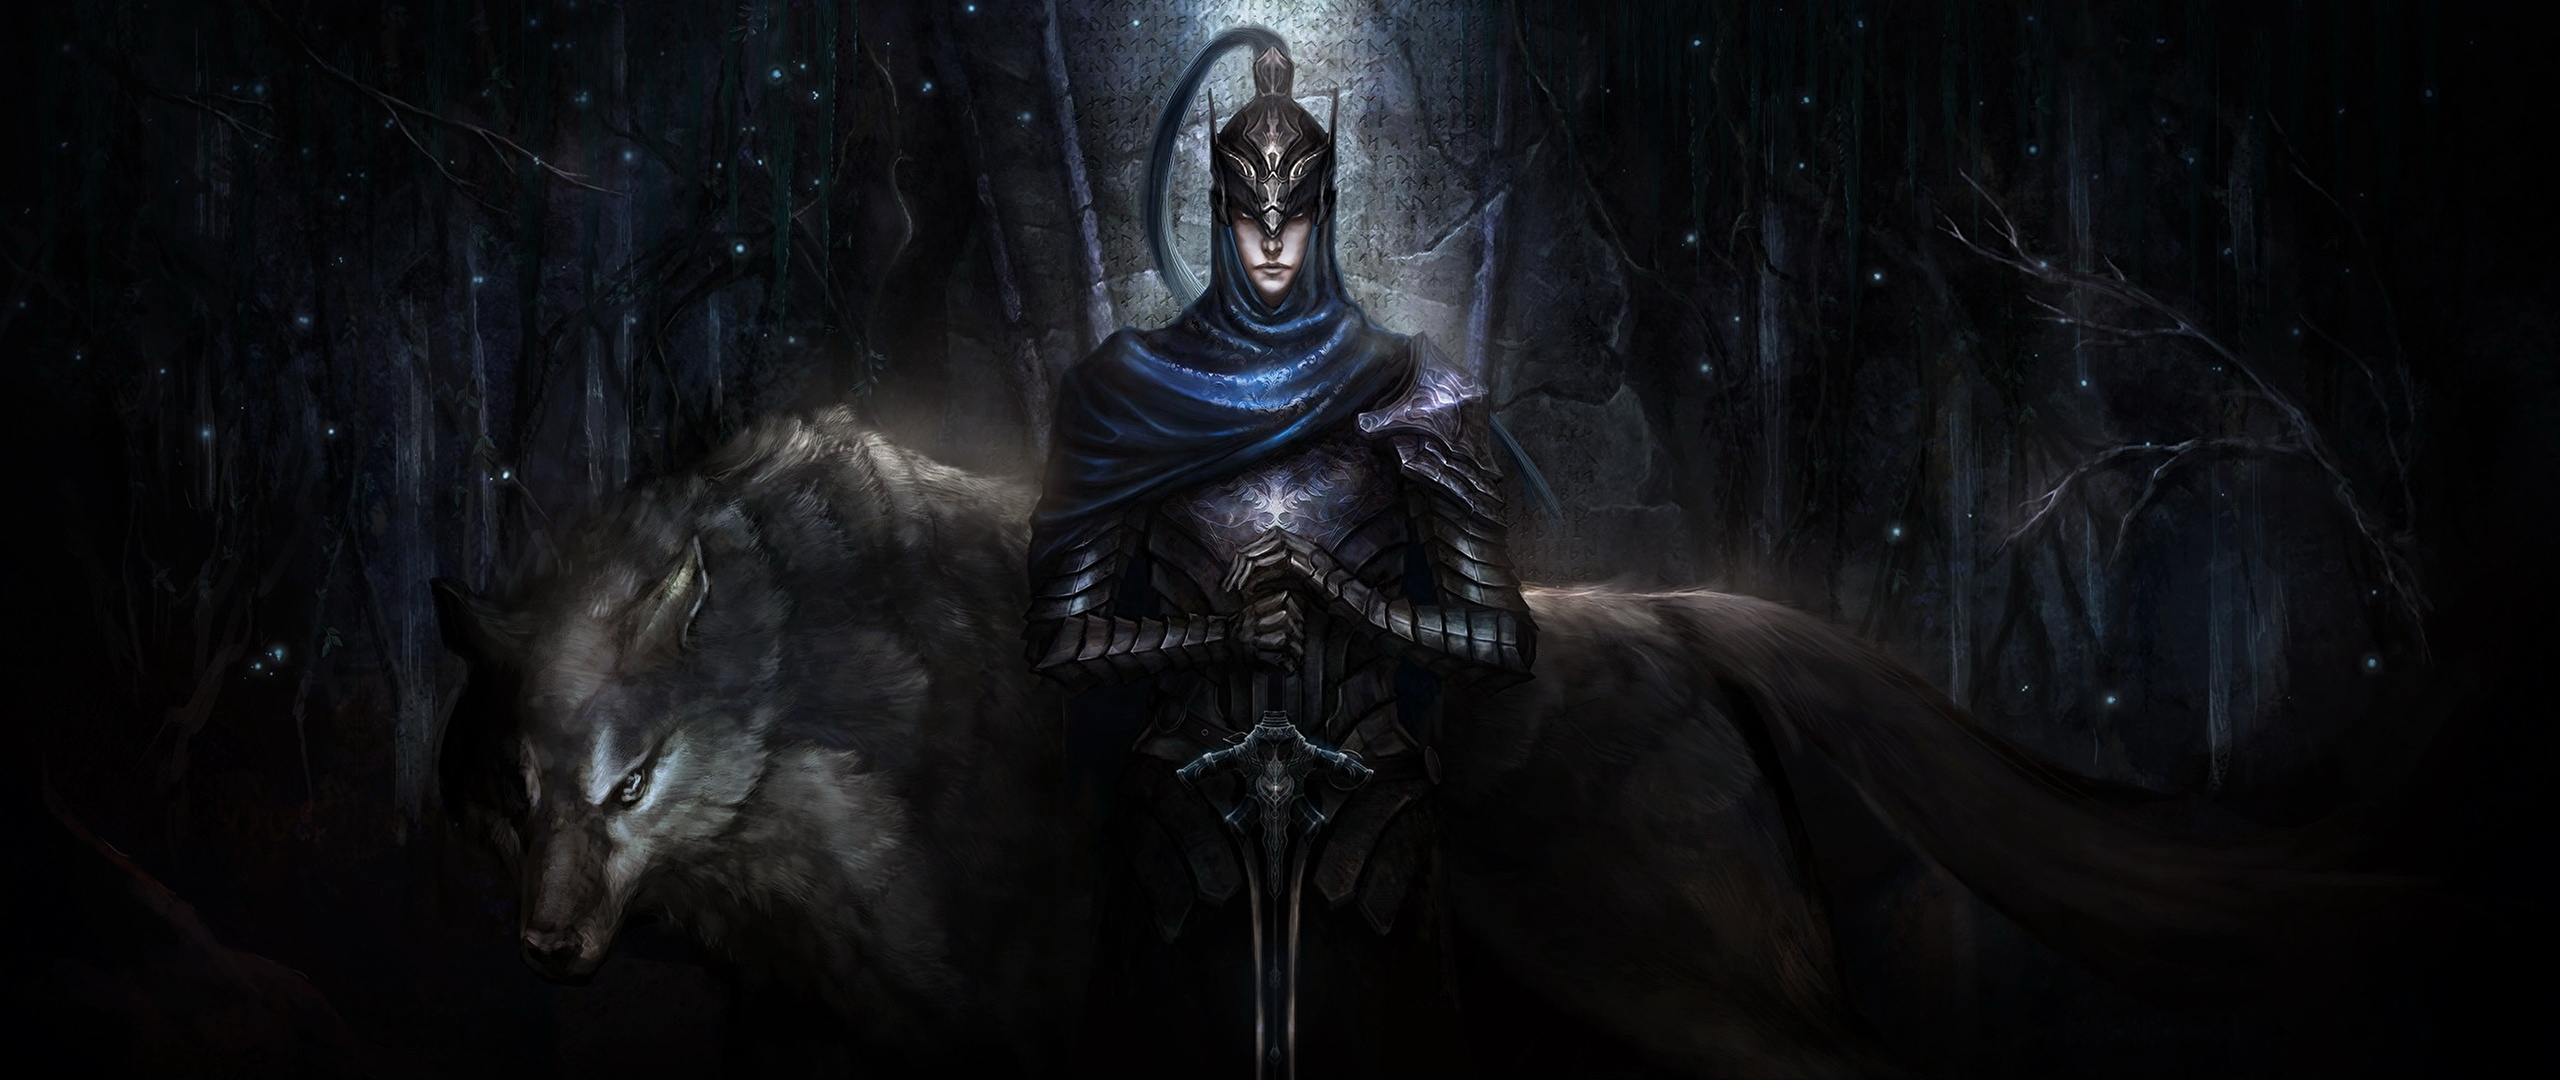 fonds d'ecran 2560x1080 dark souls chevalier loup knight artorias